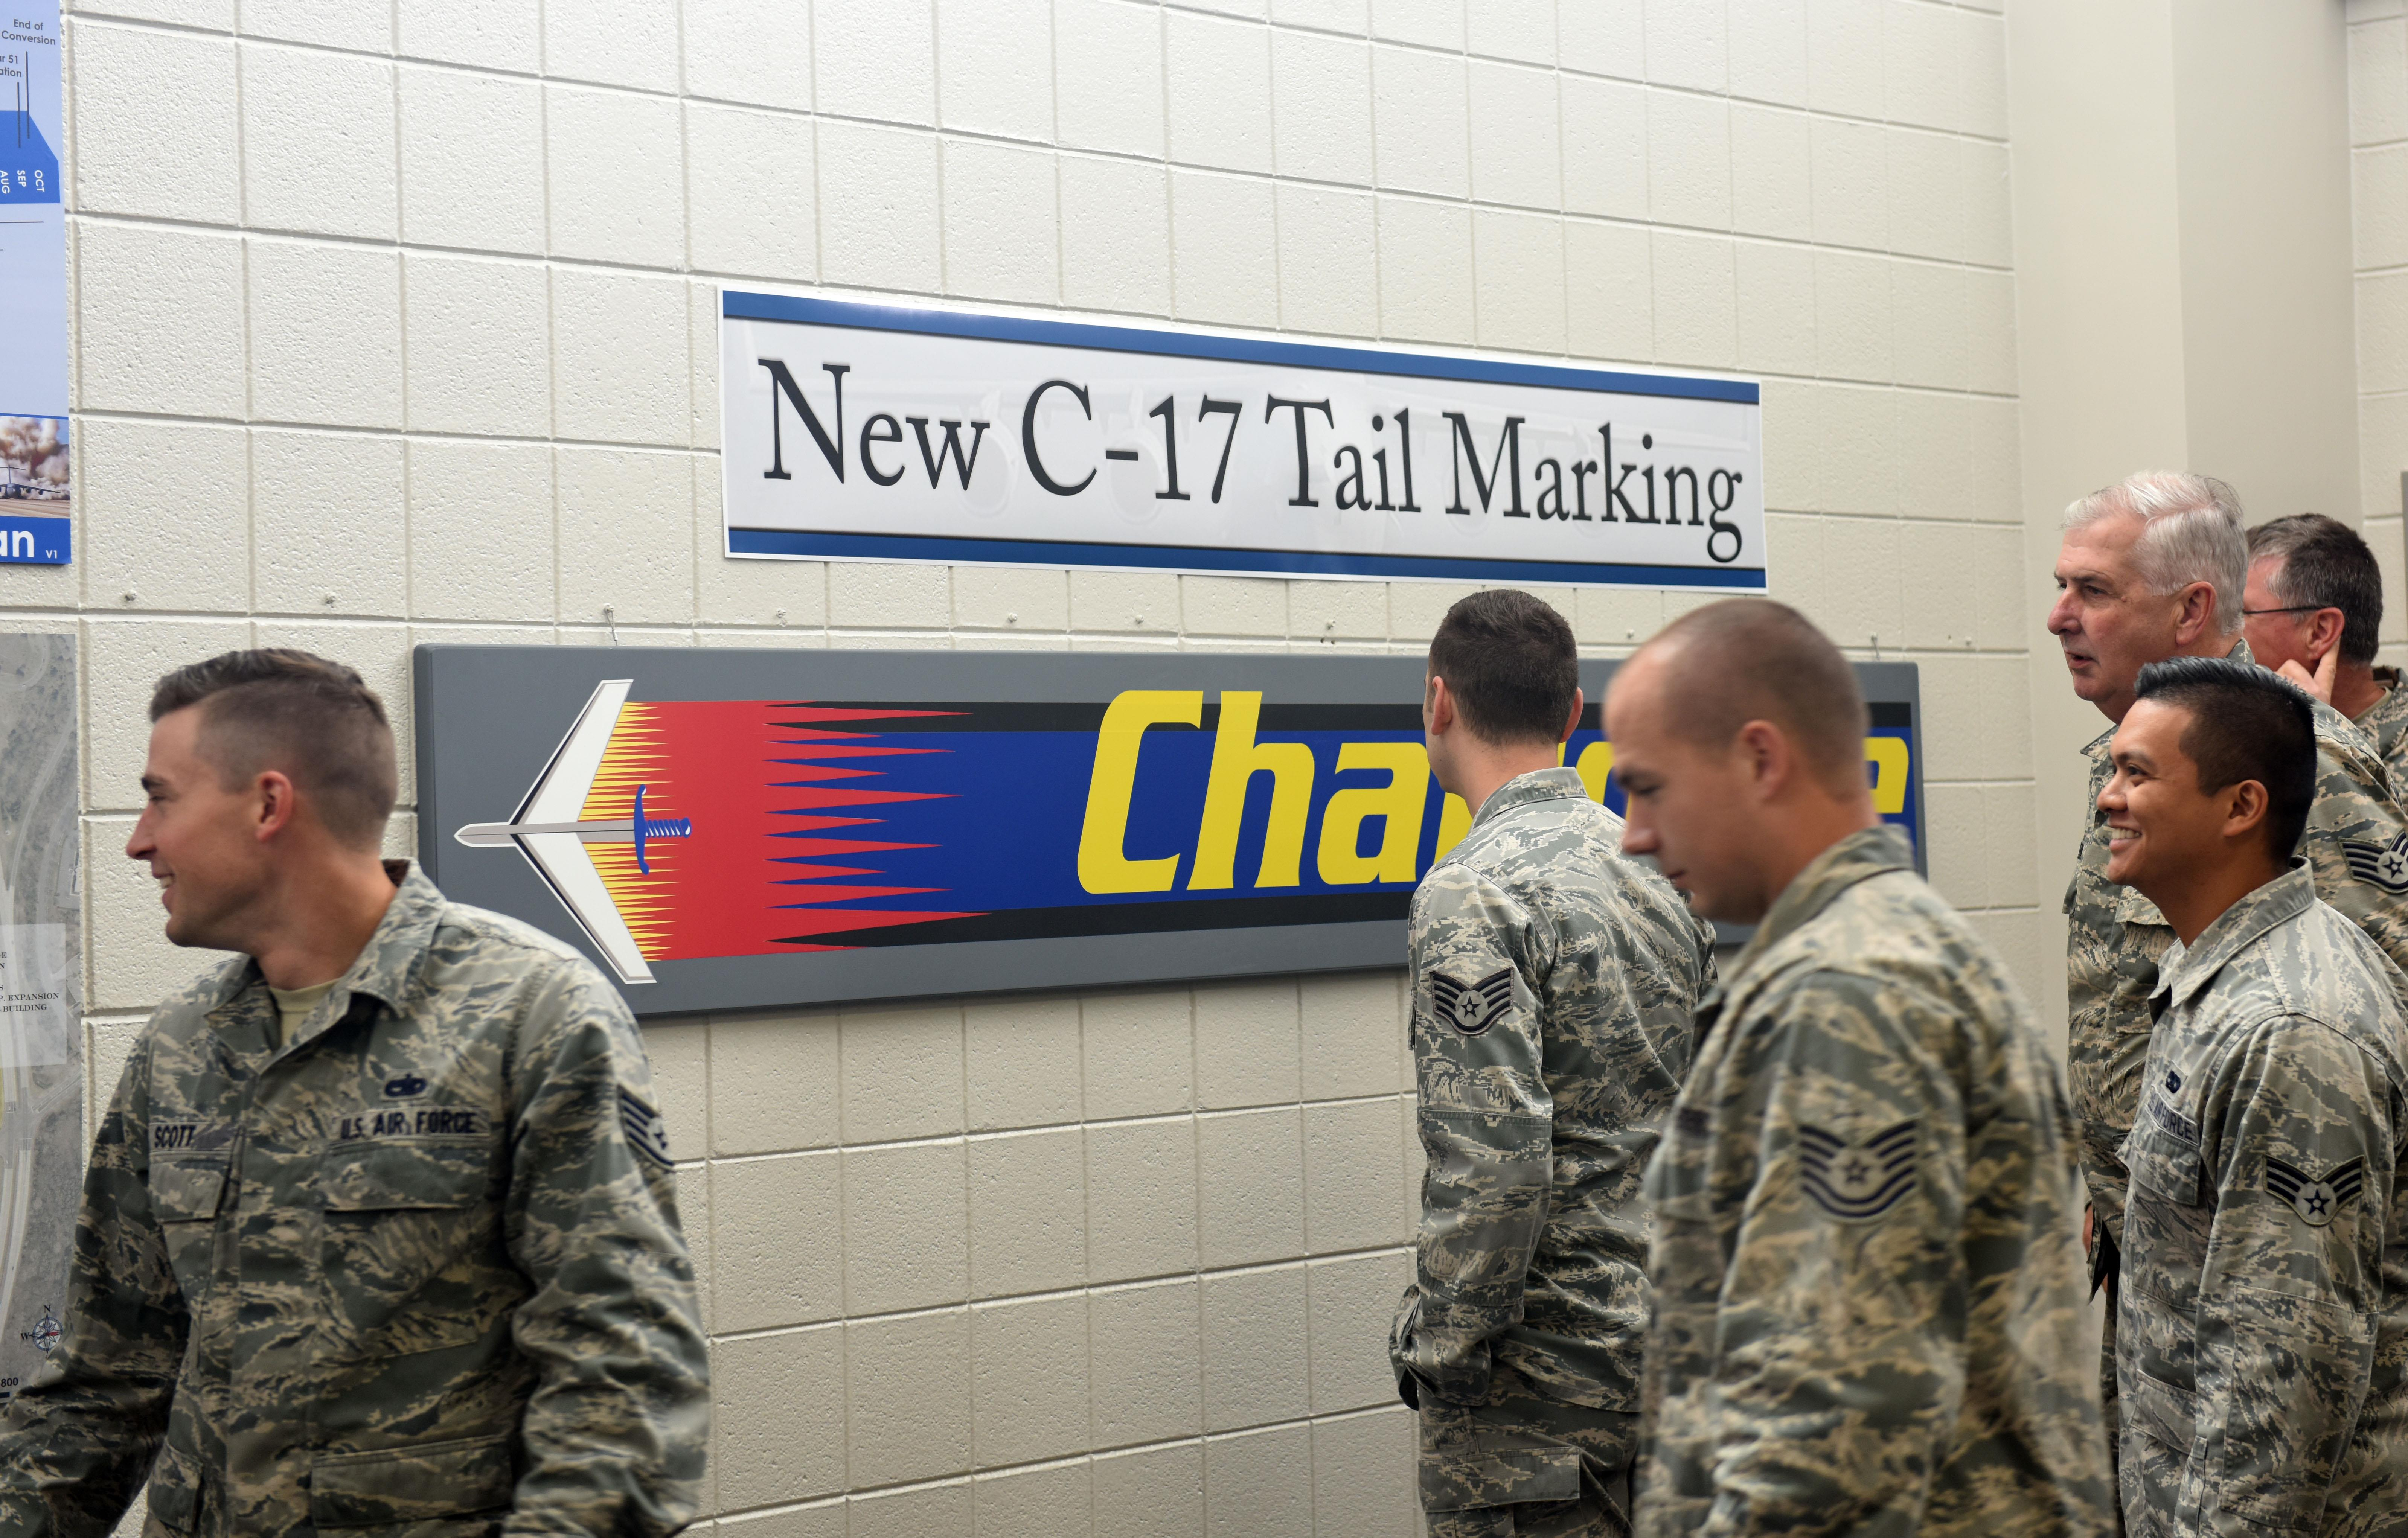 Alert 5 » C-17 tail flash for 145th Airlift Wing - Military